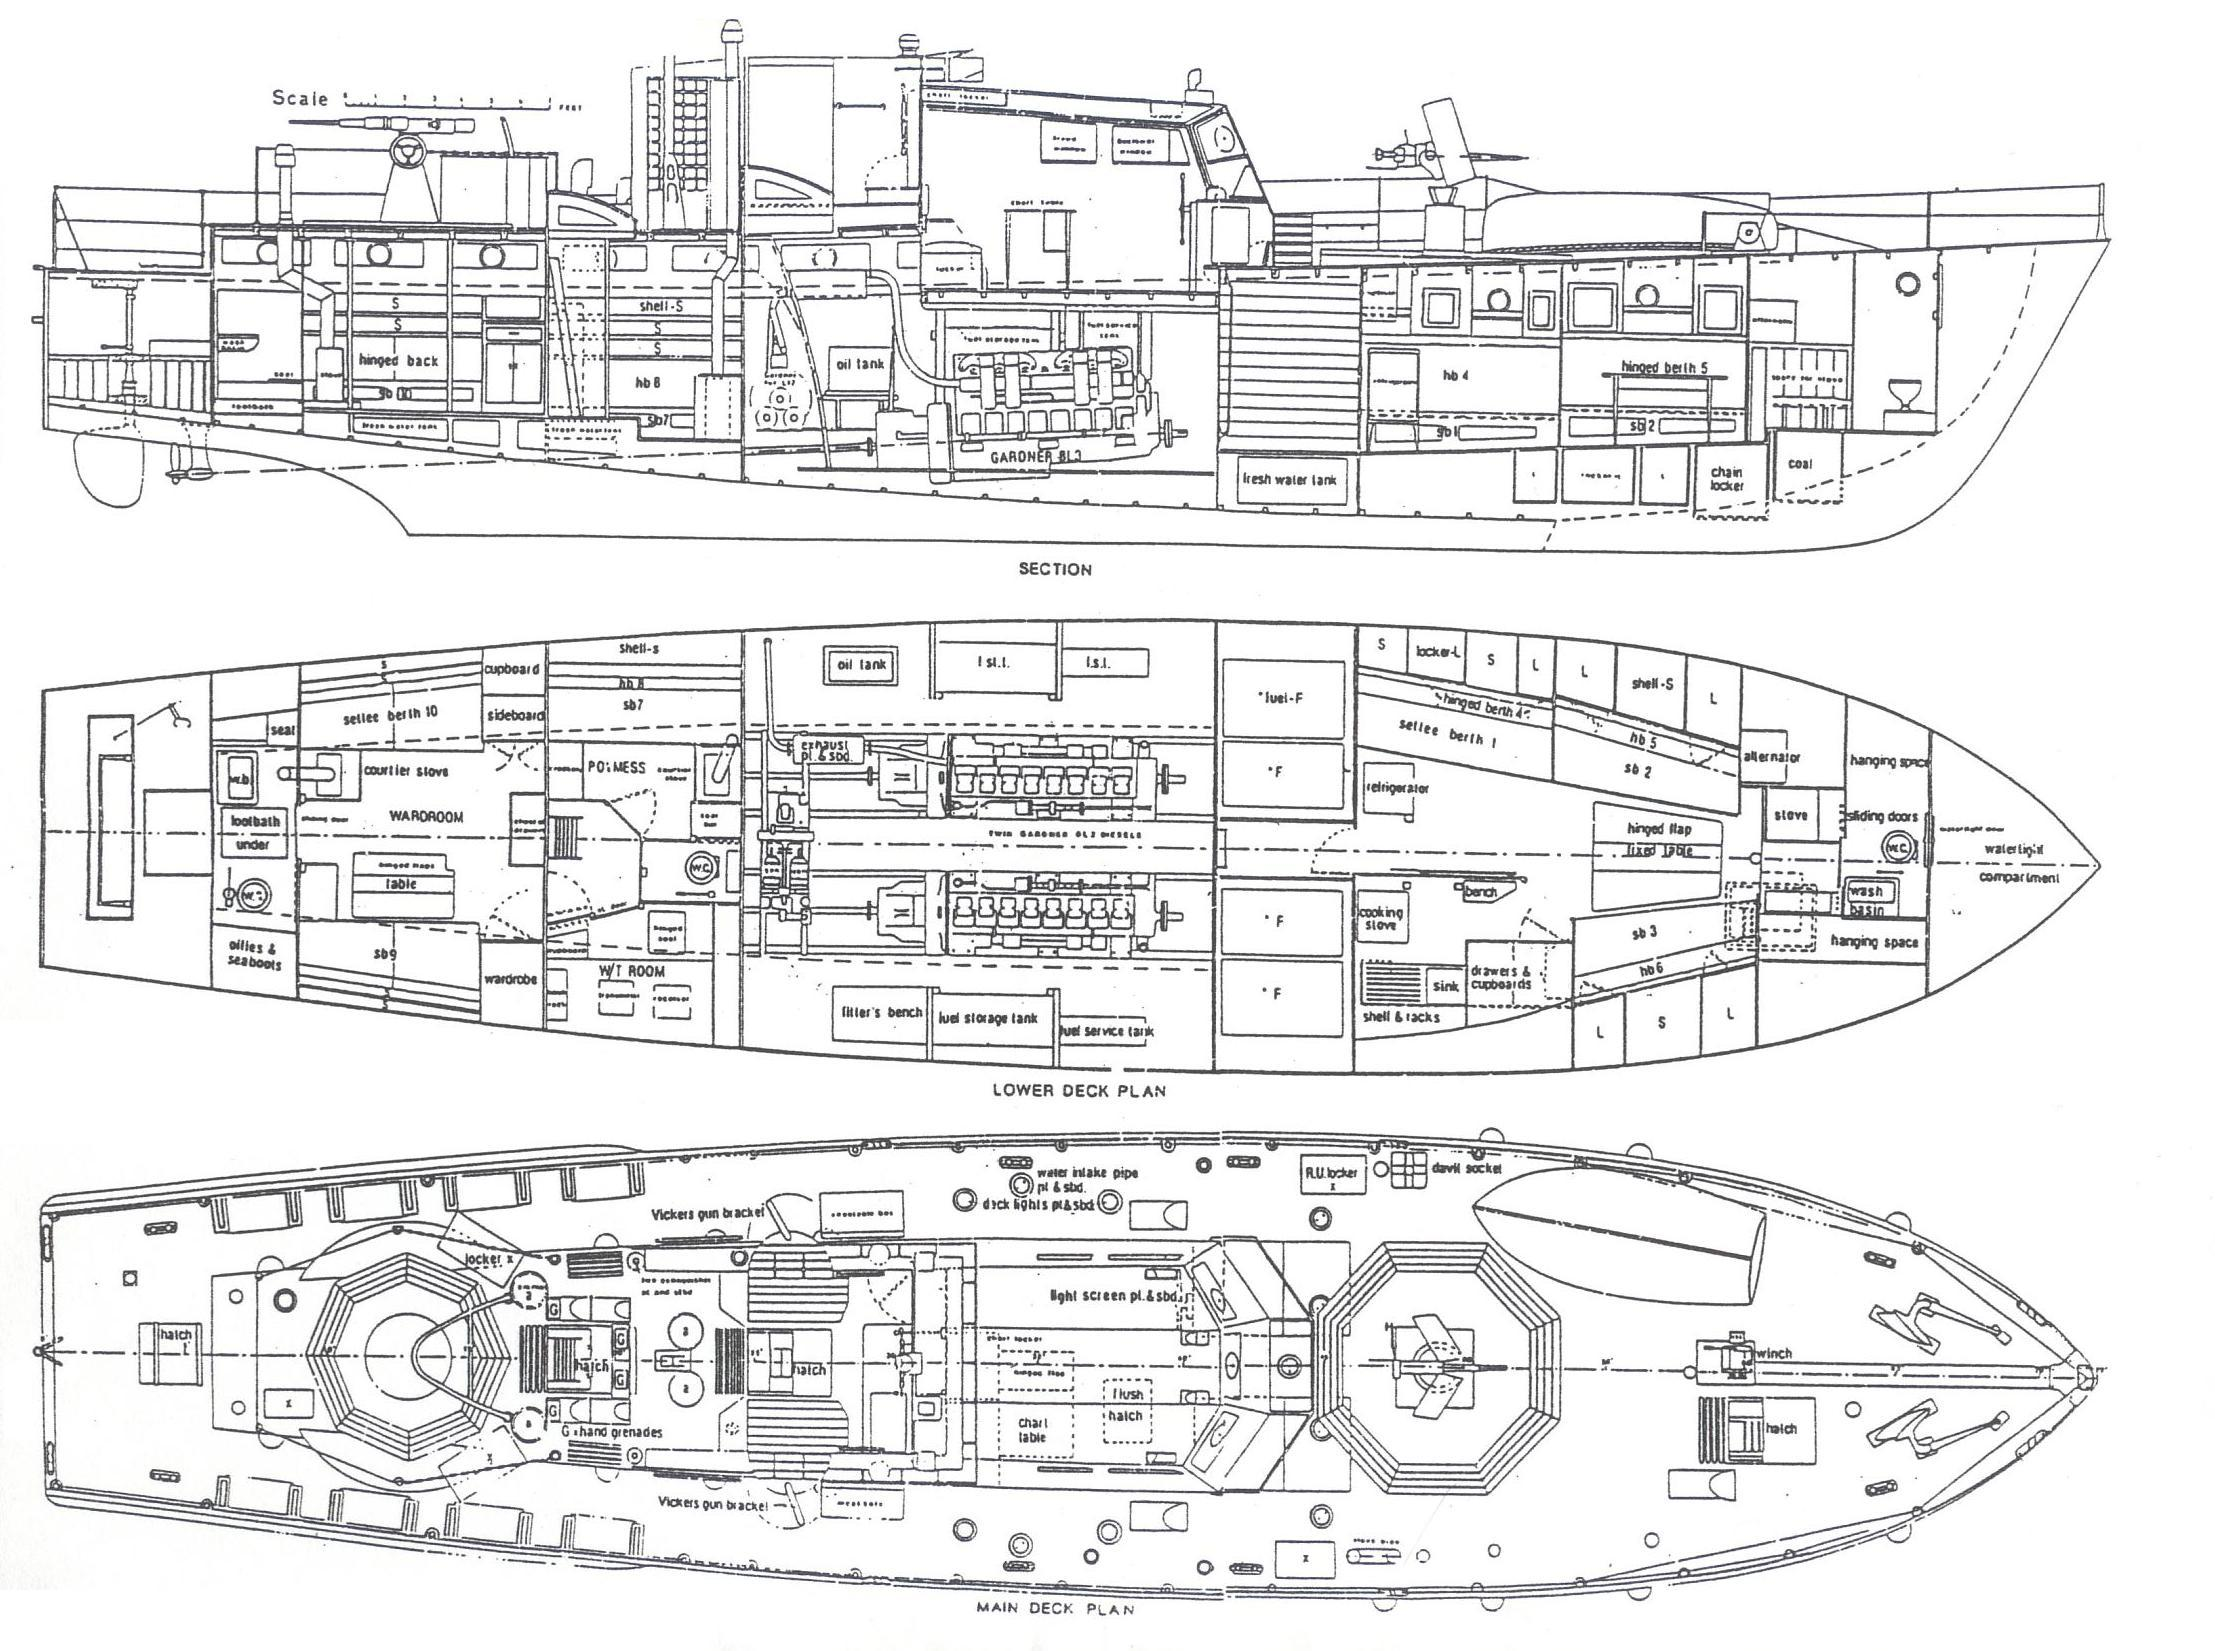 Space Cargo Ship Deck Plan - Pics about space